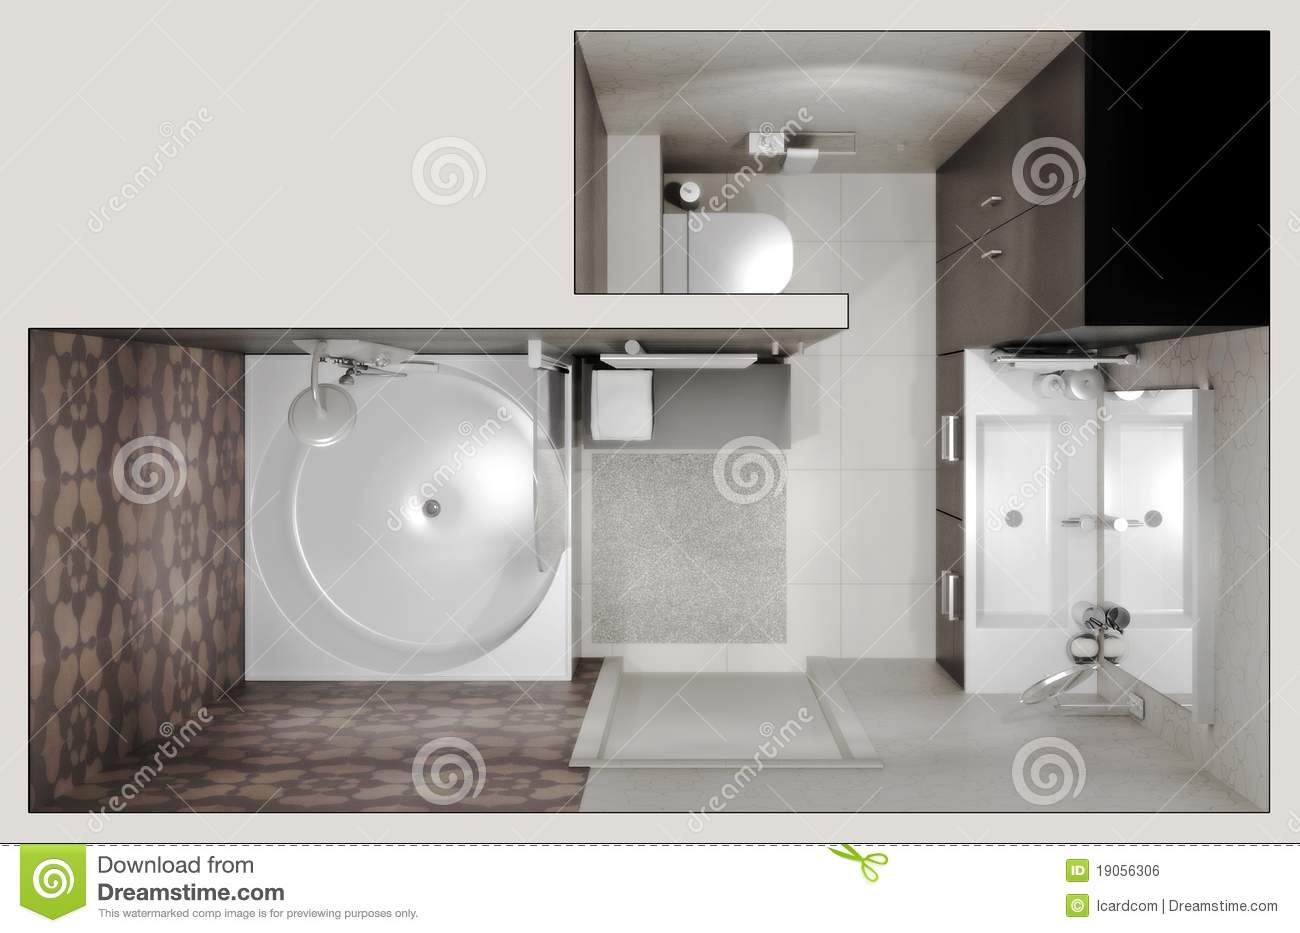 Top View Of The Bathroom